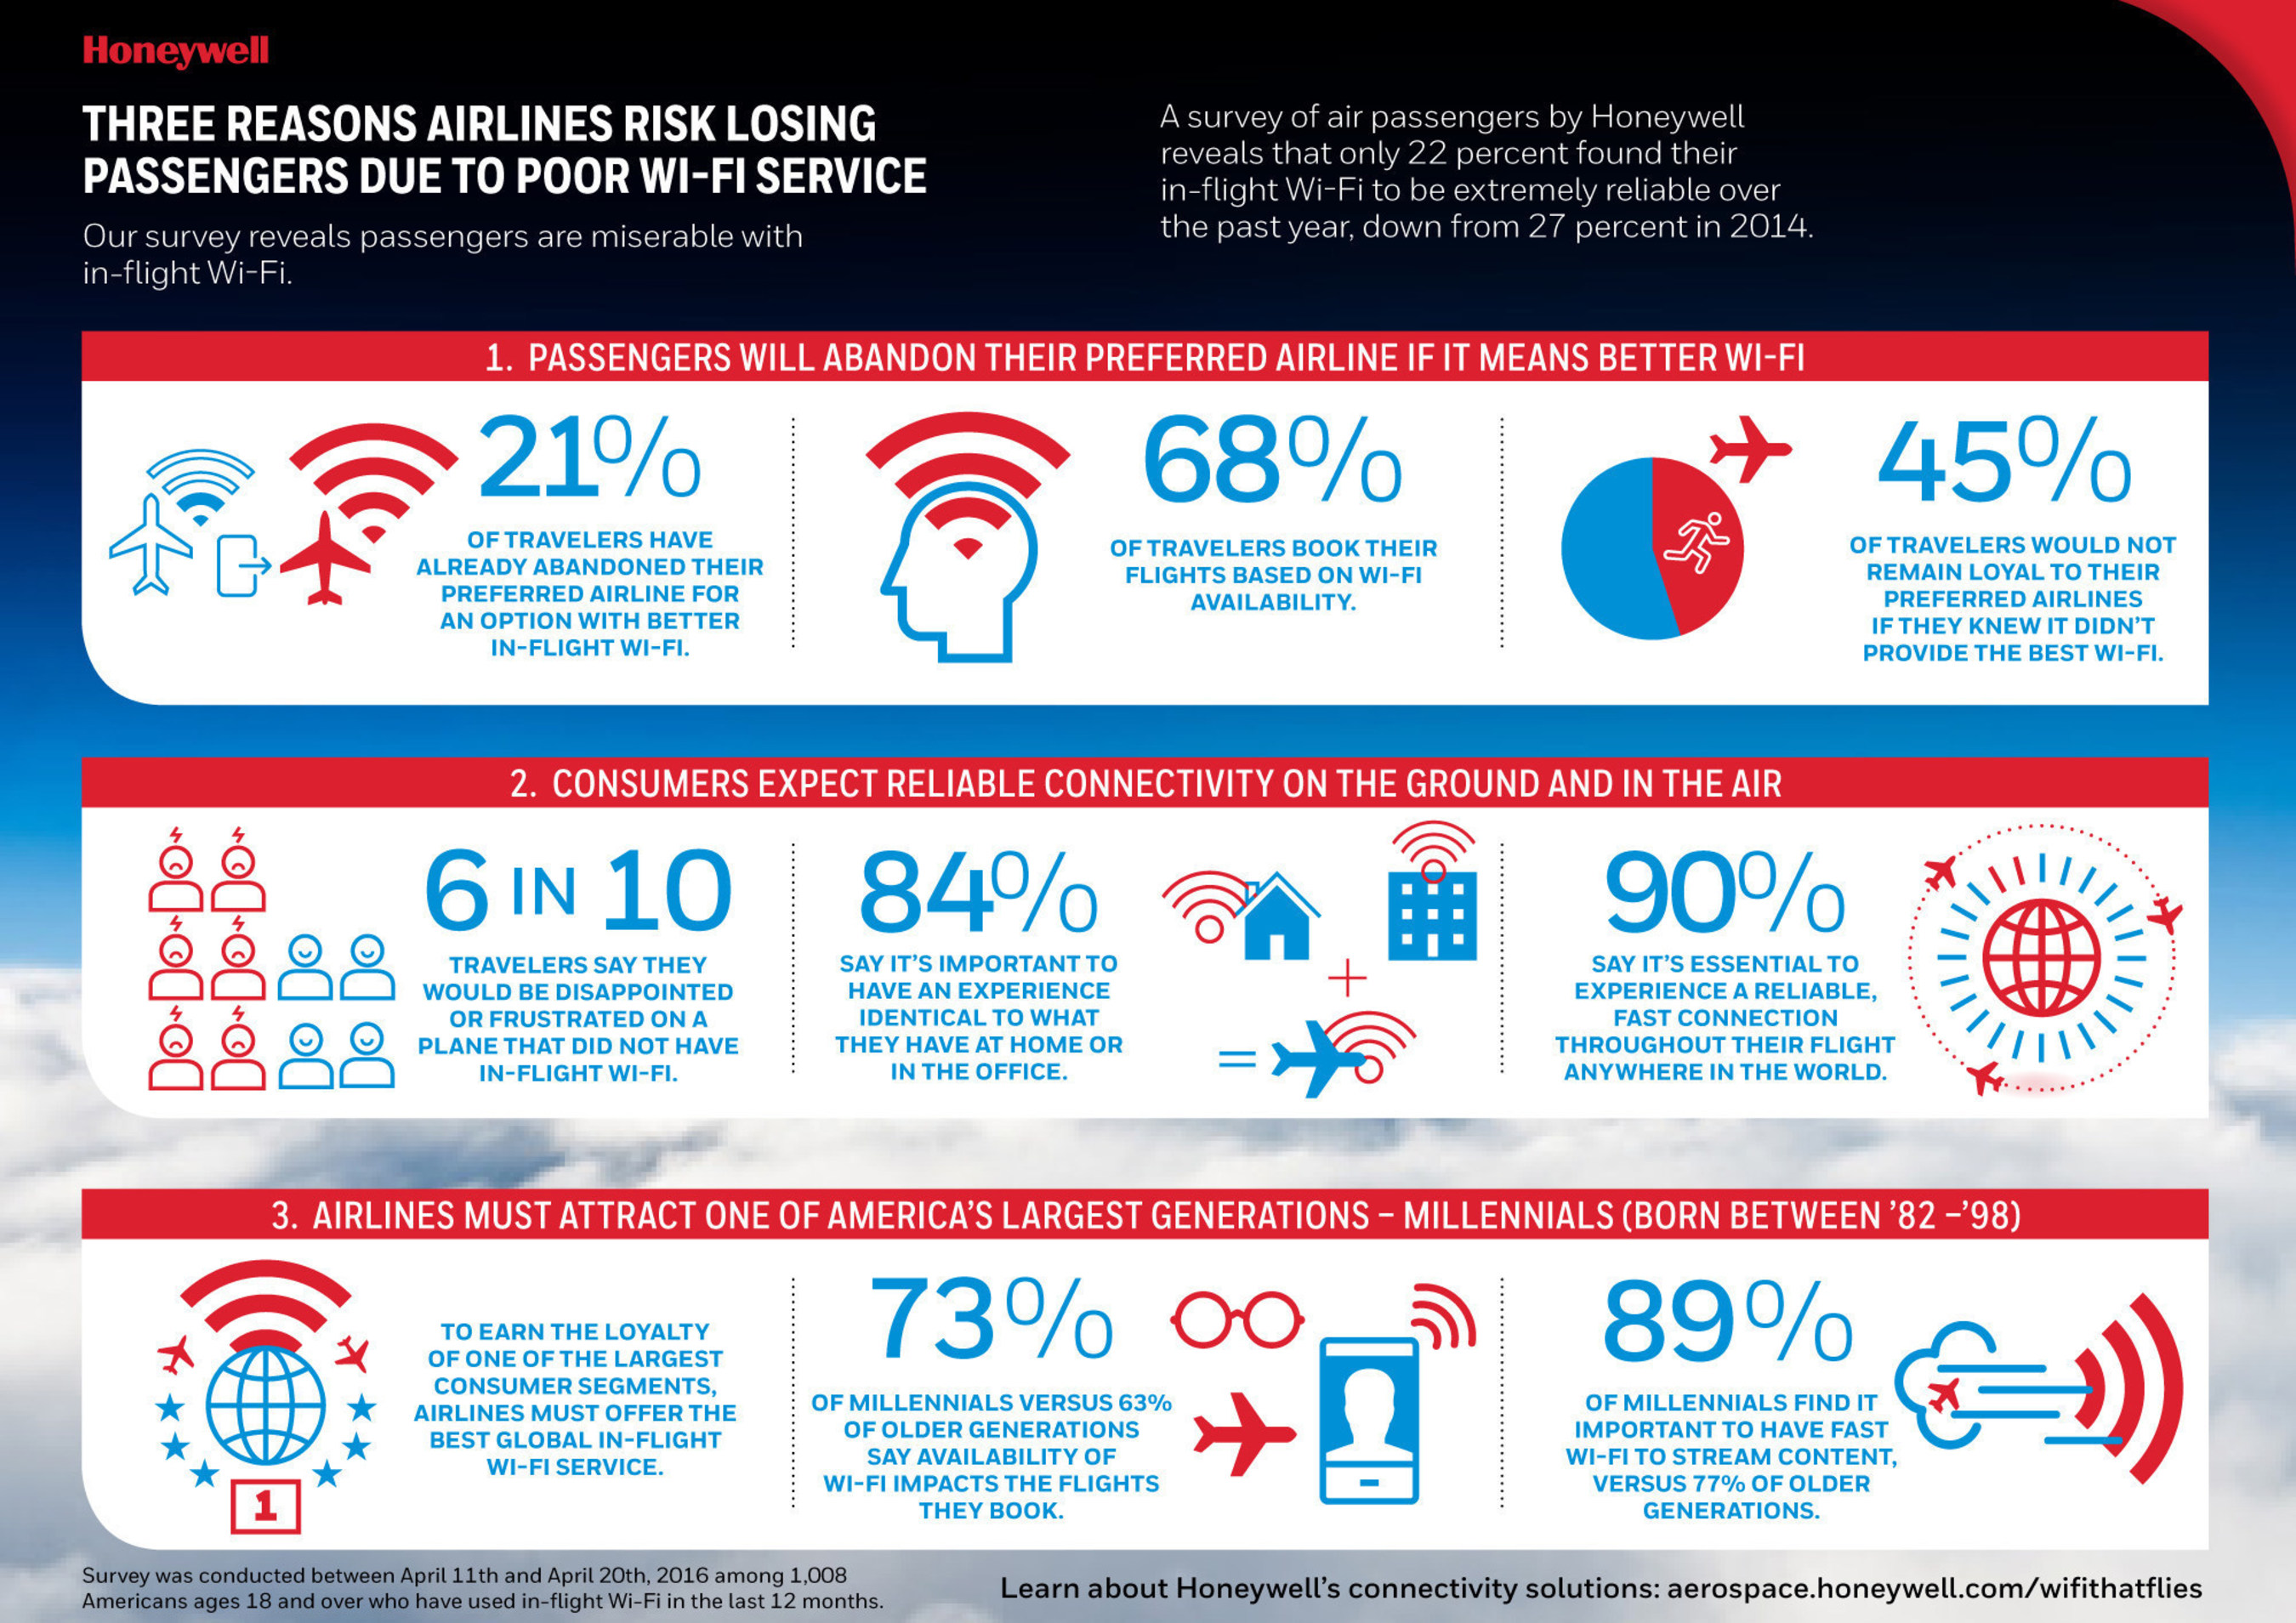 Honeywell Survey: Airlines Risk Losing Passengers Due To Poor Wi-Fi